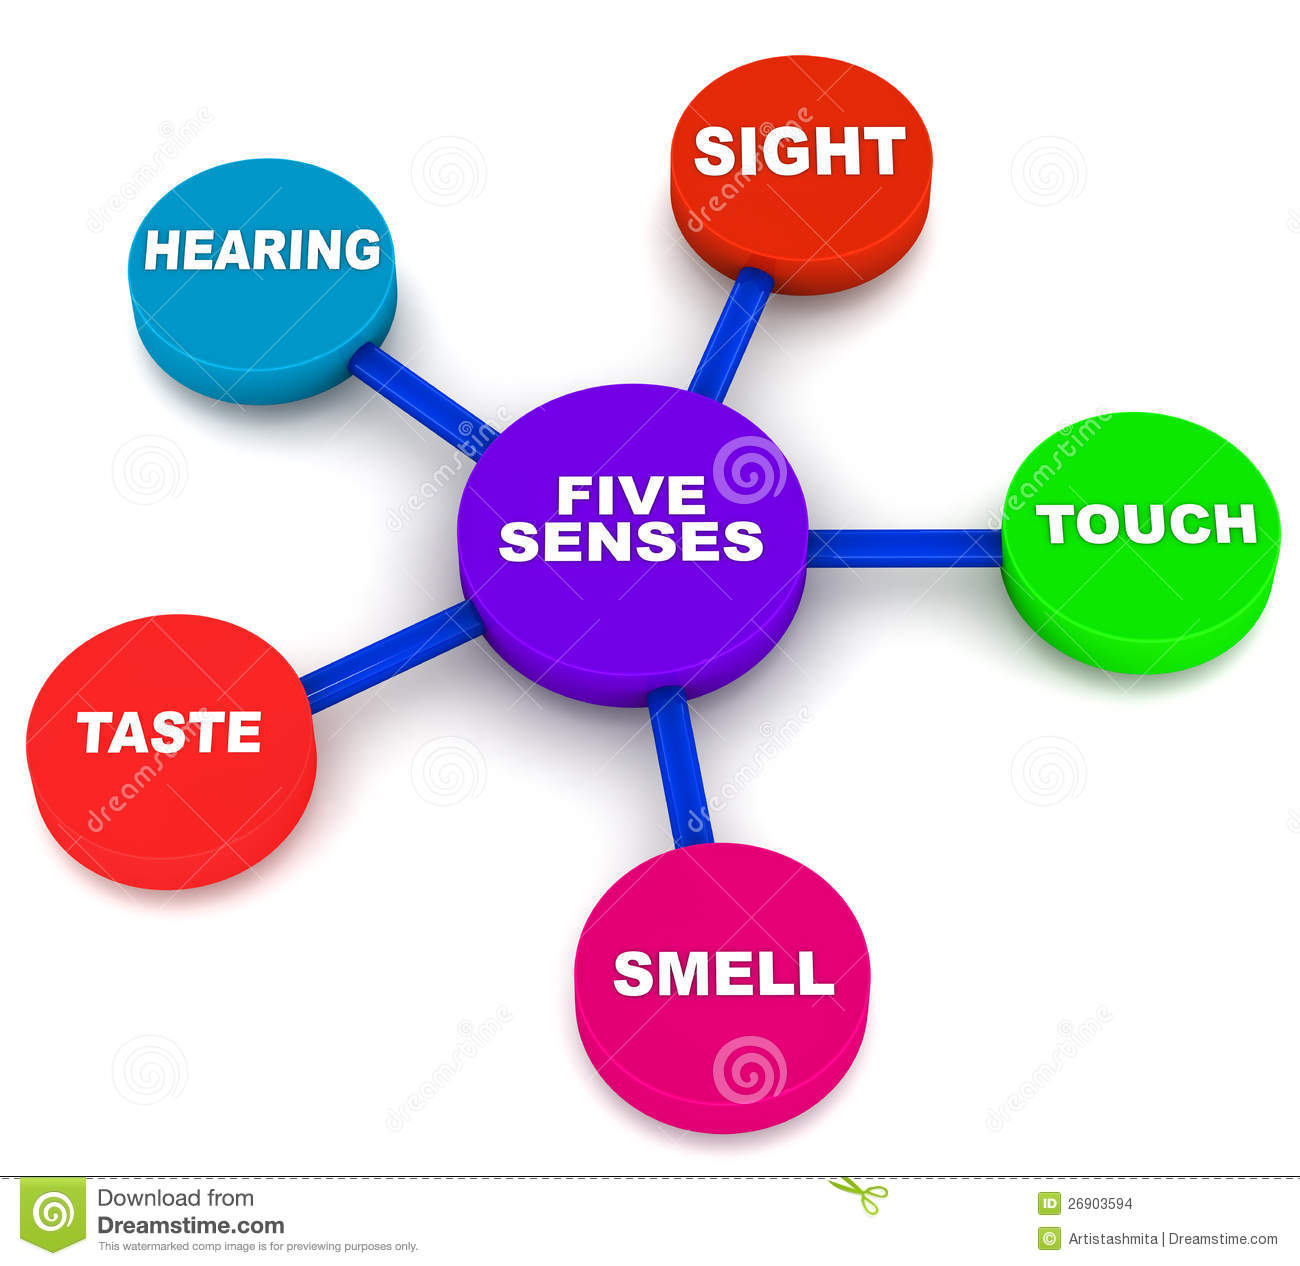 Five Senses Of Human Beings Sight Touch Hearing Taste And Smell